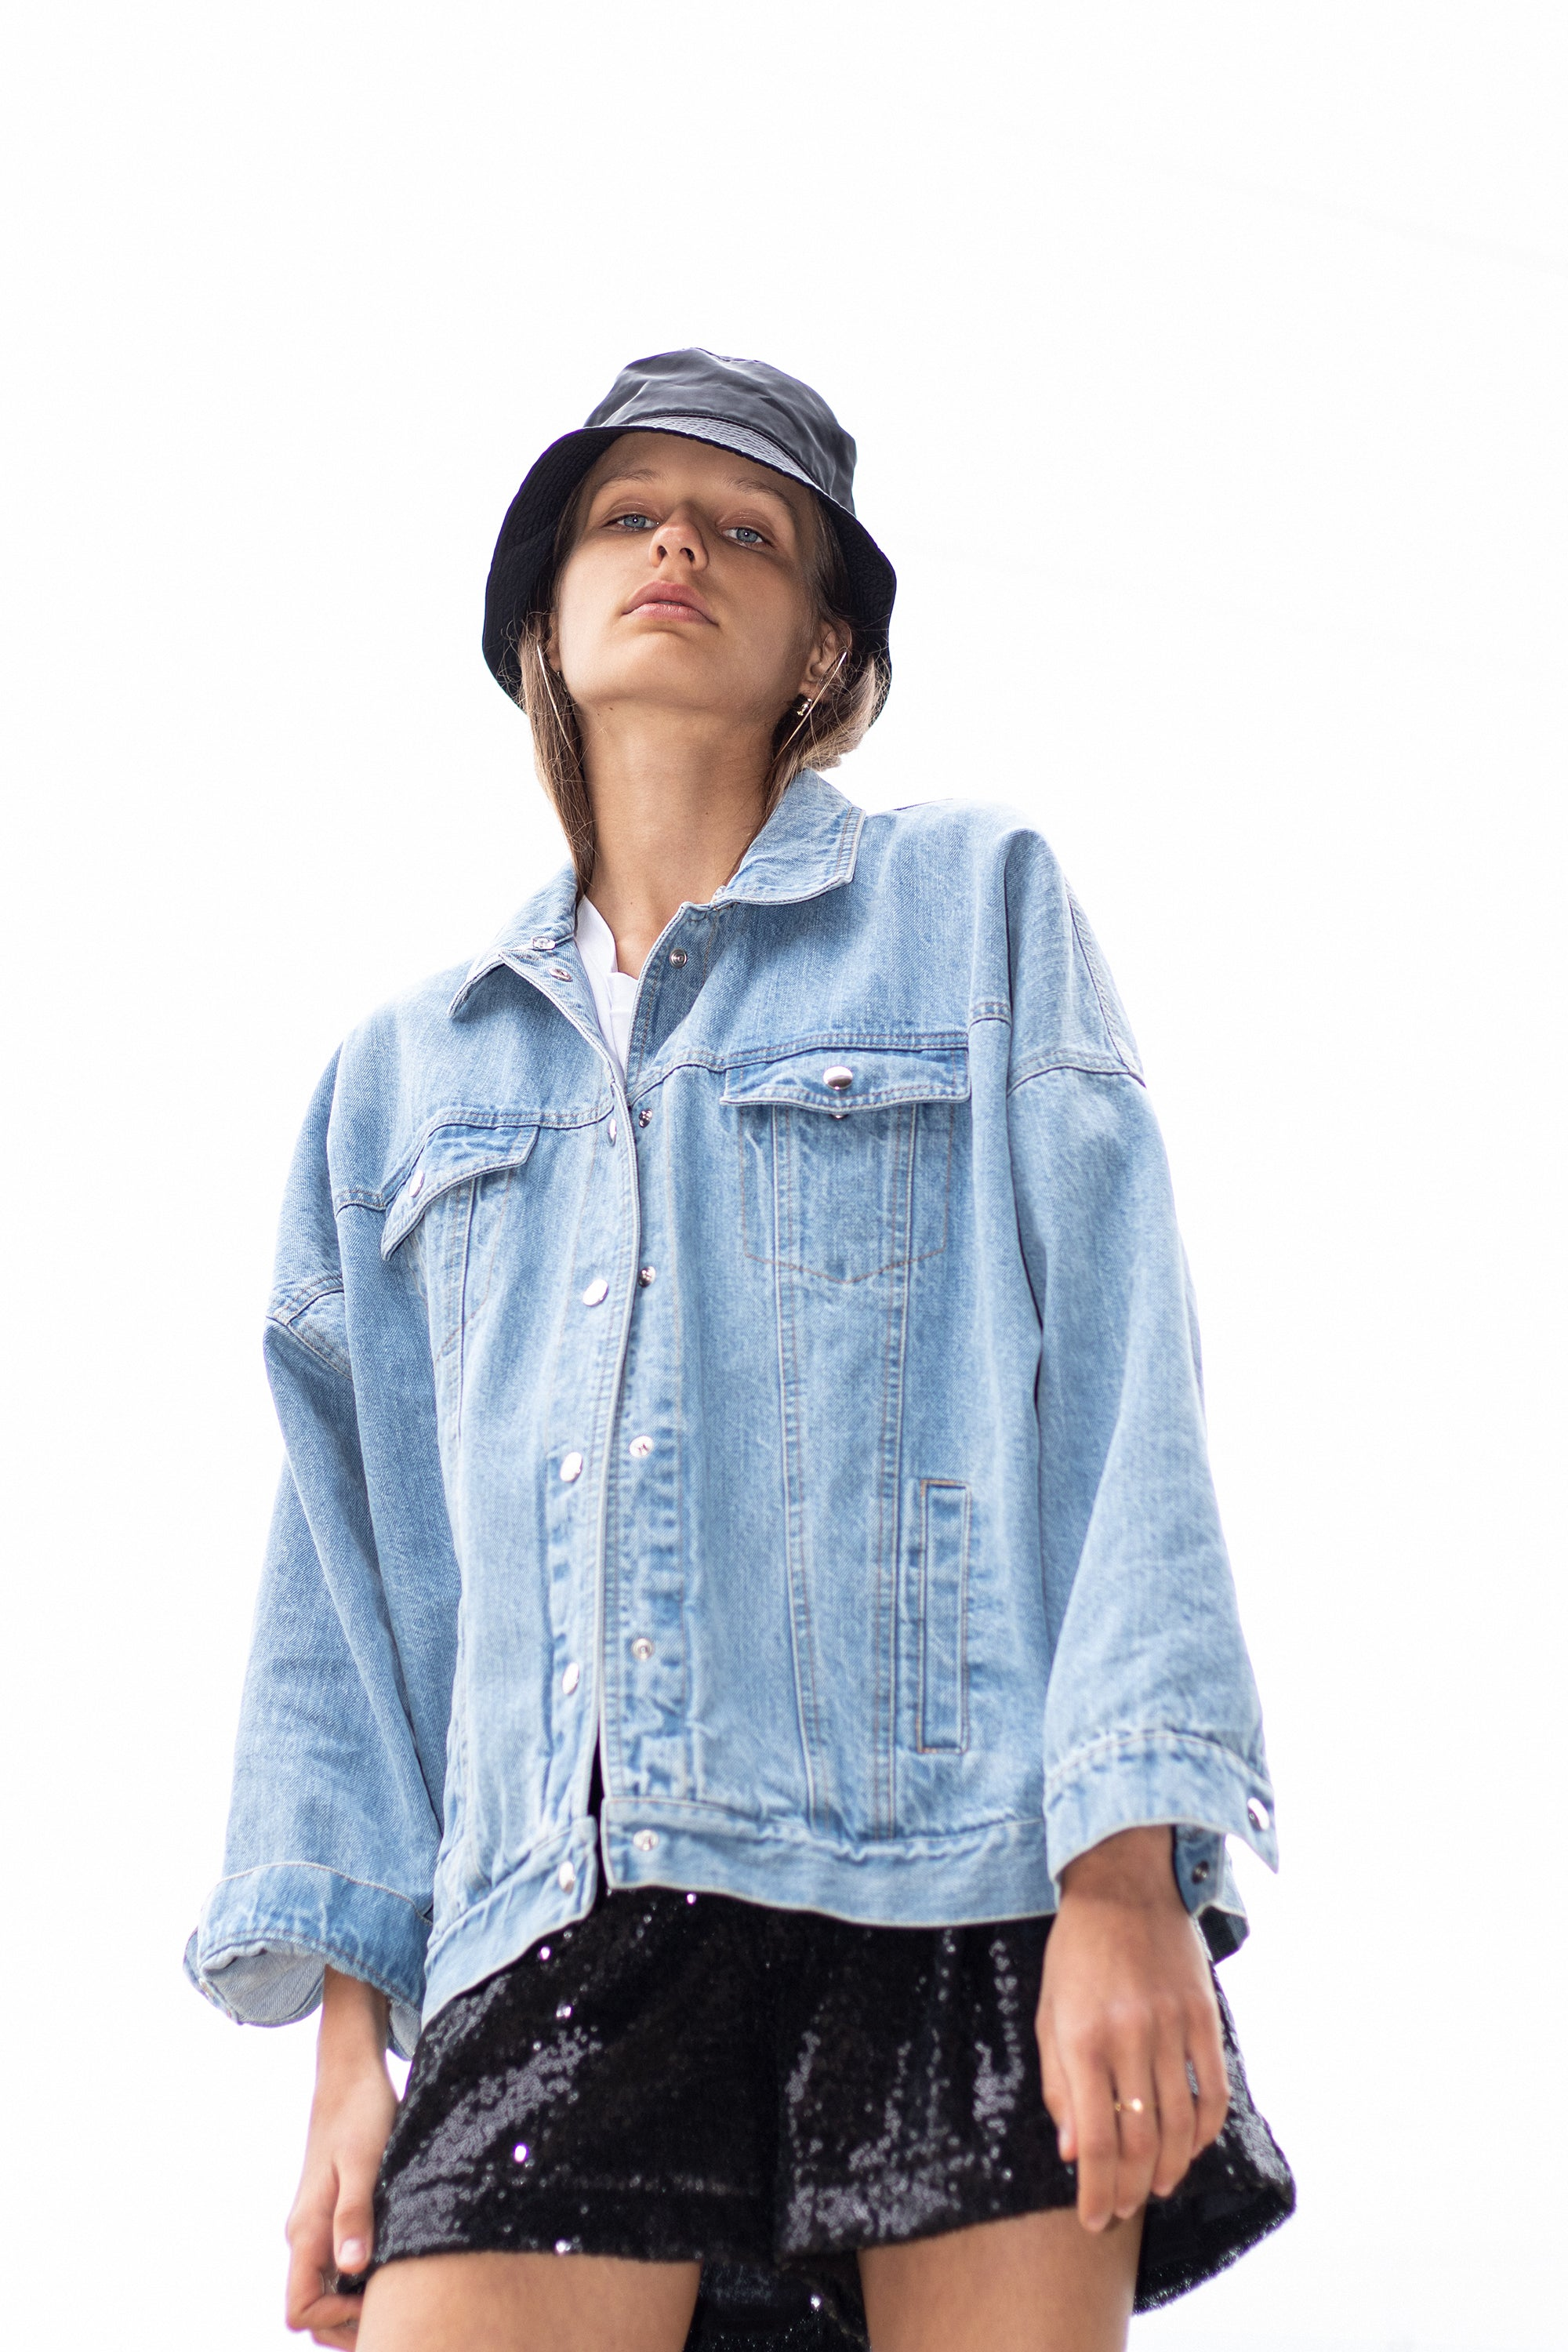 le-slap-logo-tshirt-light-denim-jacket-with-wording-streetstyle-photoshoot.jpg